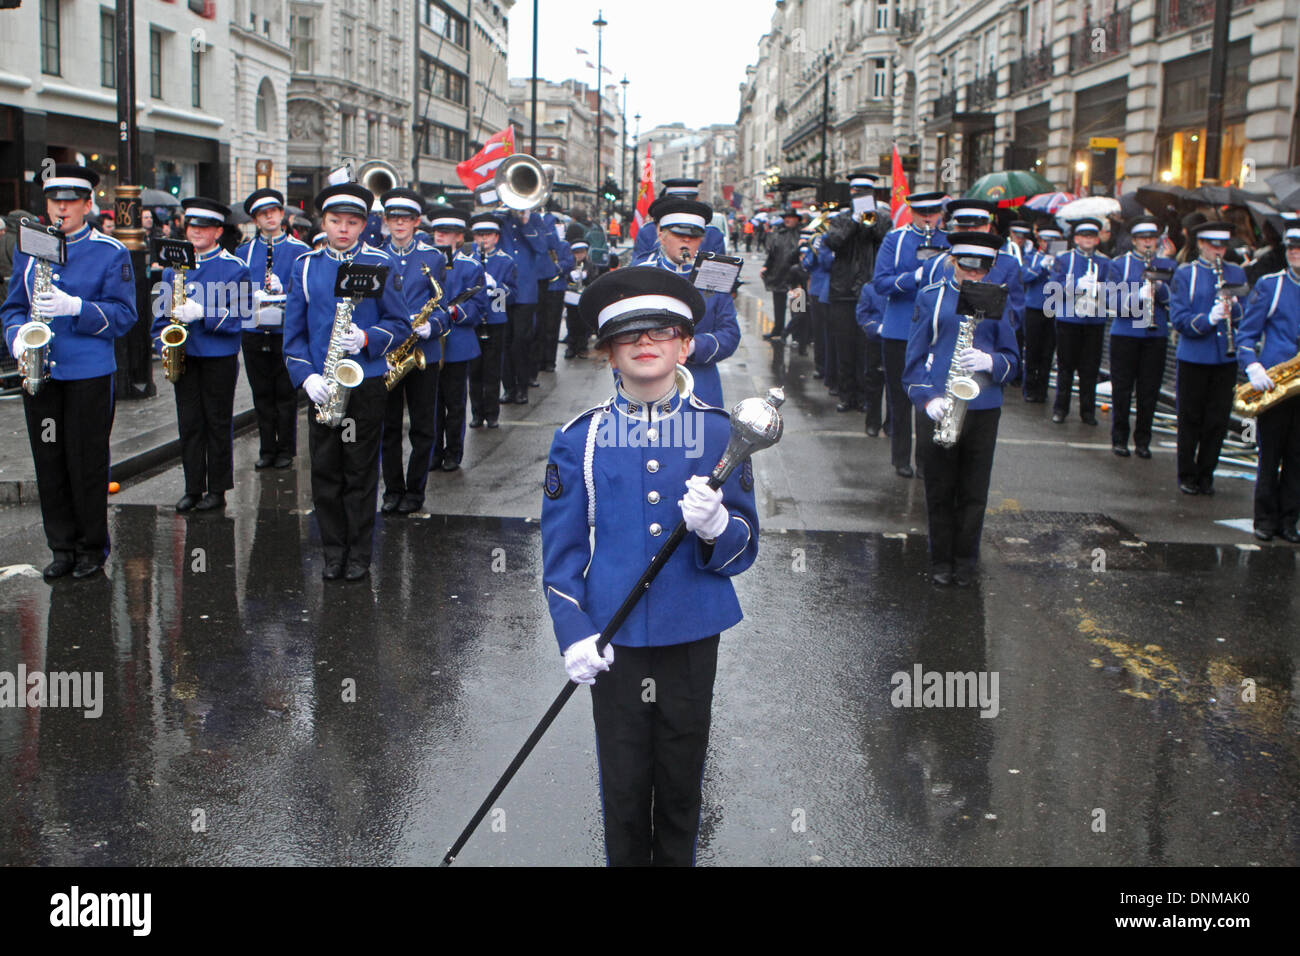 London,UK,1st January 2014,Essex marching Corps from Benfleet took part in the London's New Year's Day Parade 2014 Stock Photo